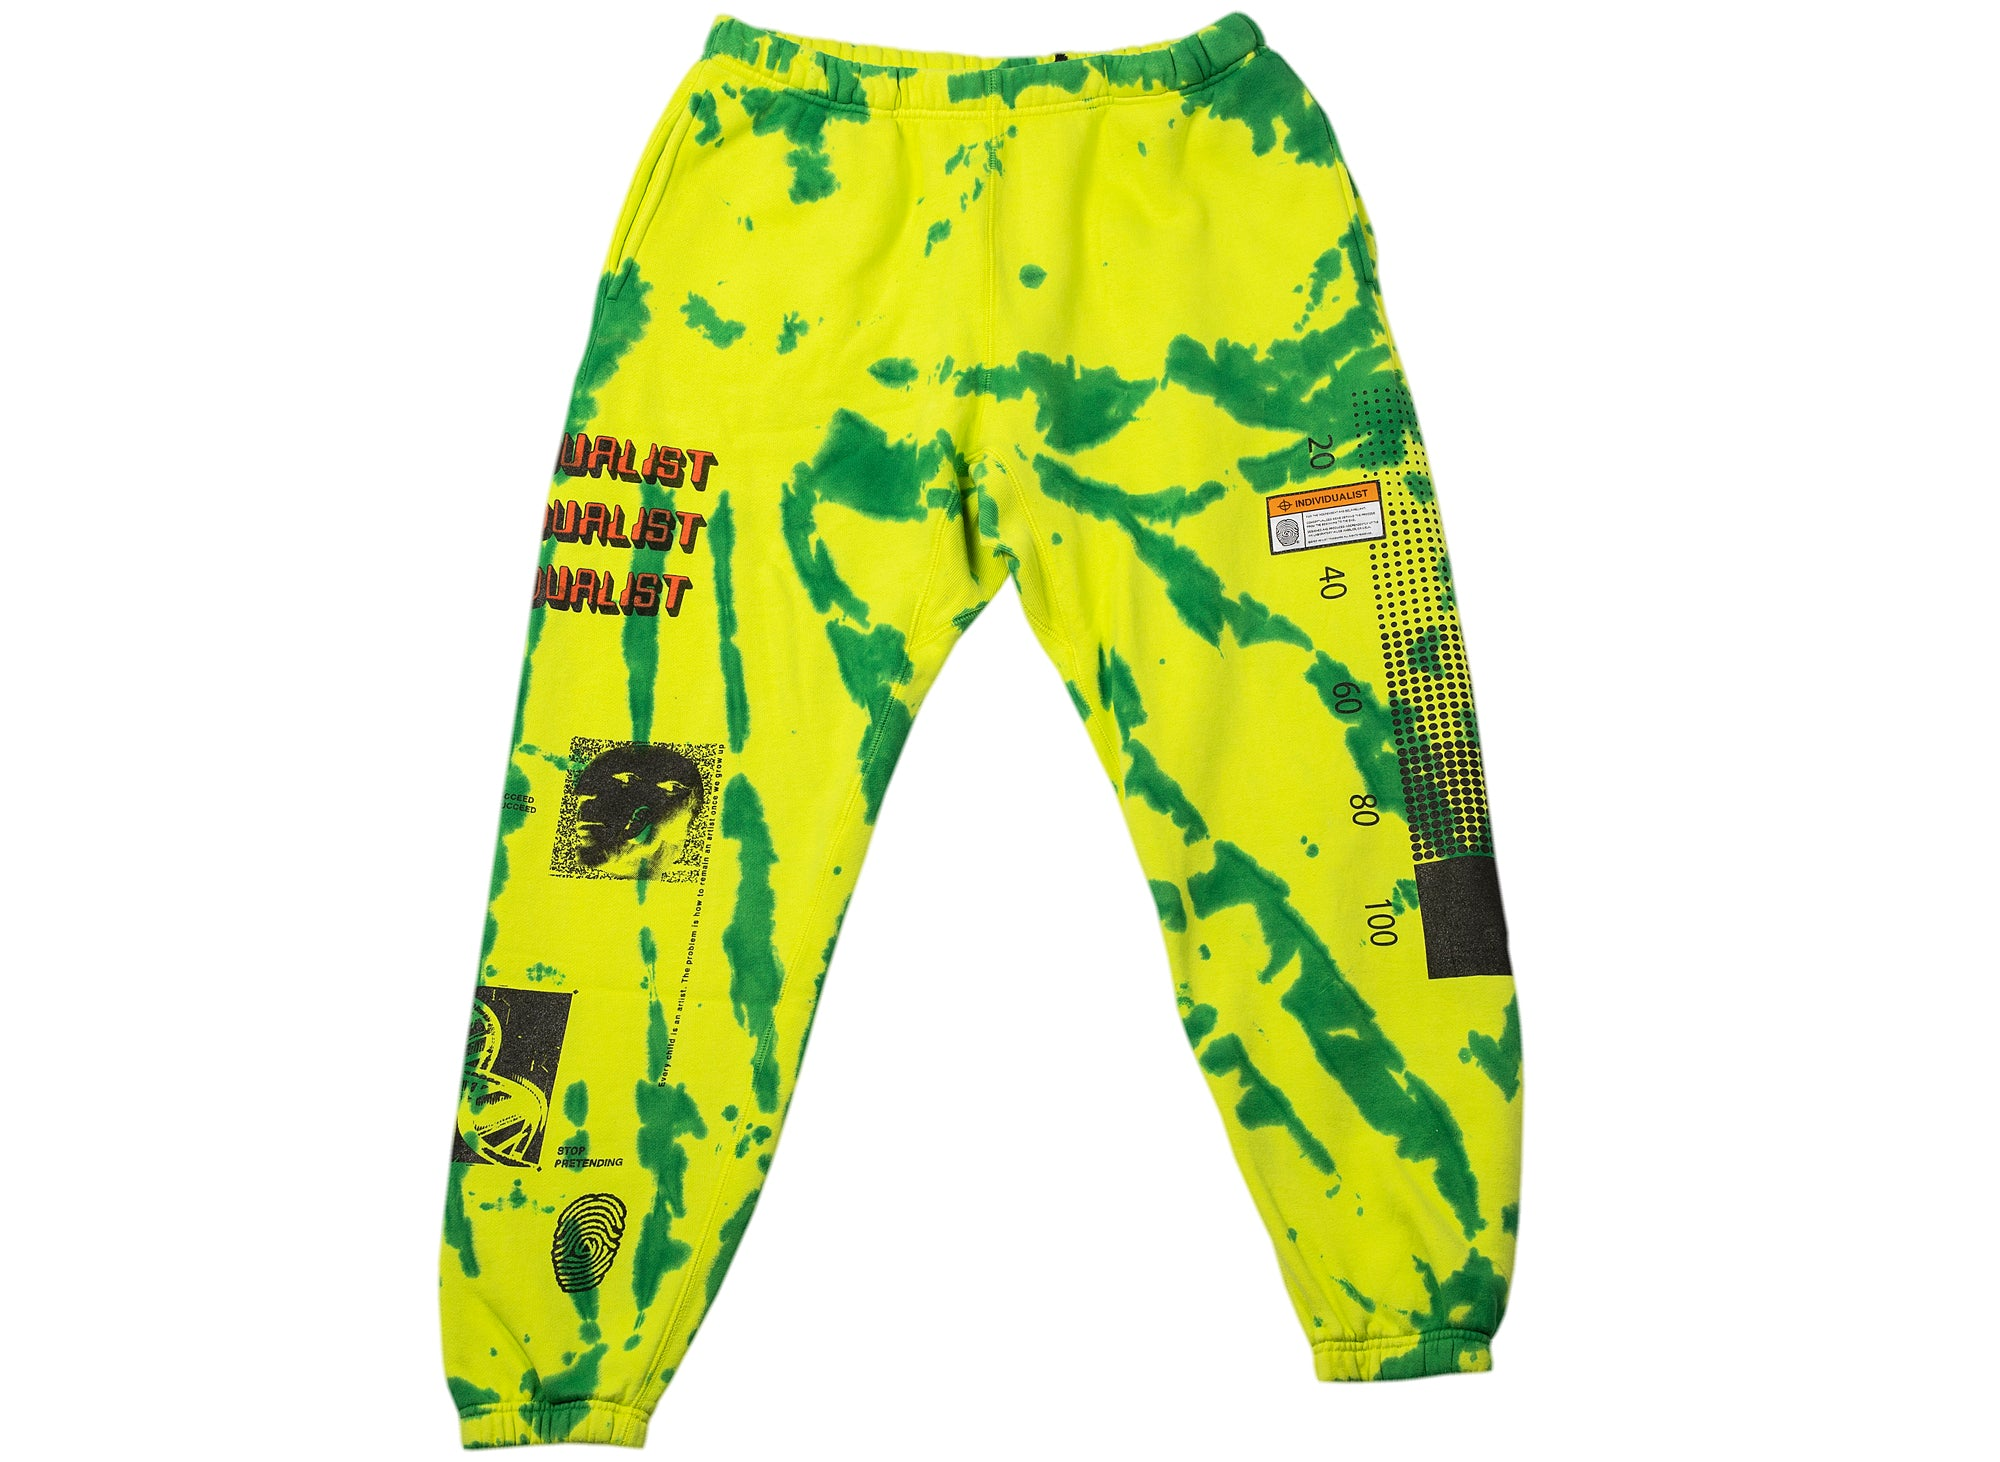 INDVLST Tie Dye Fleece Pants xld